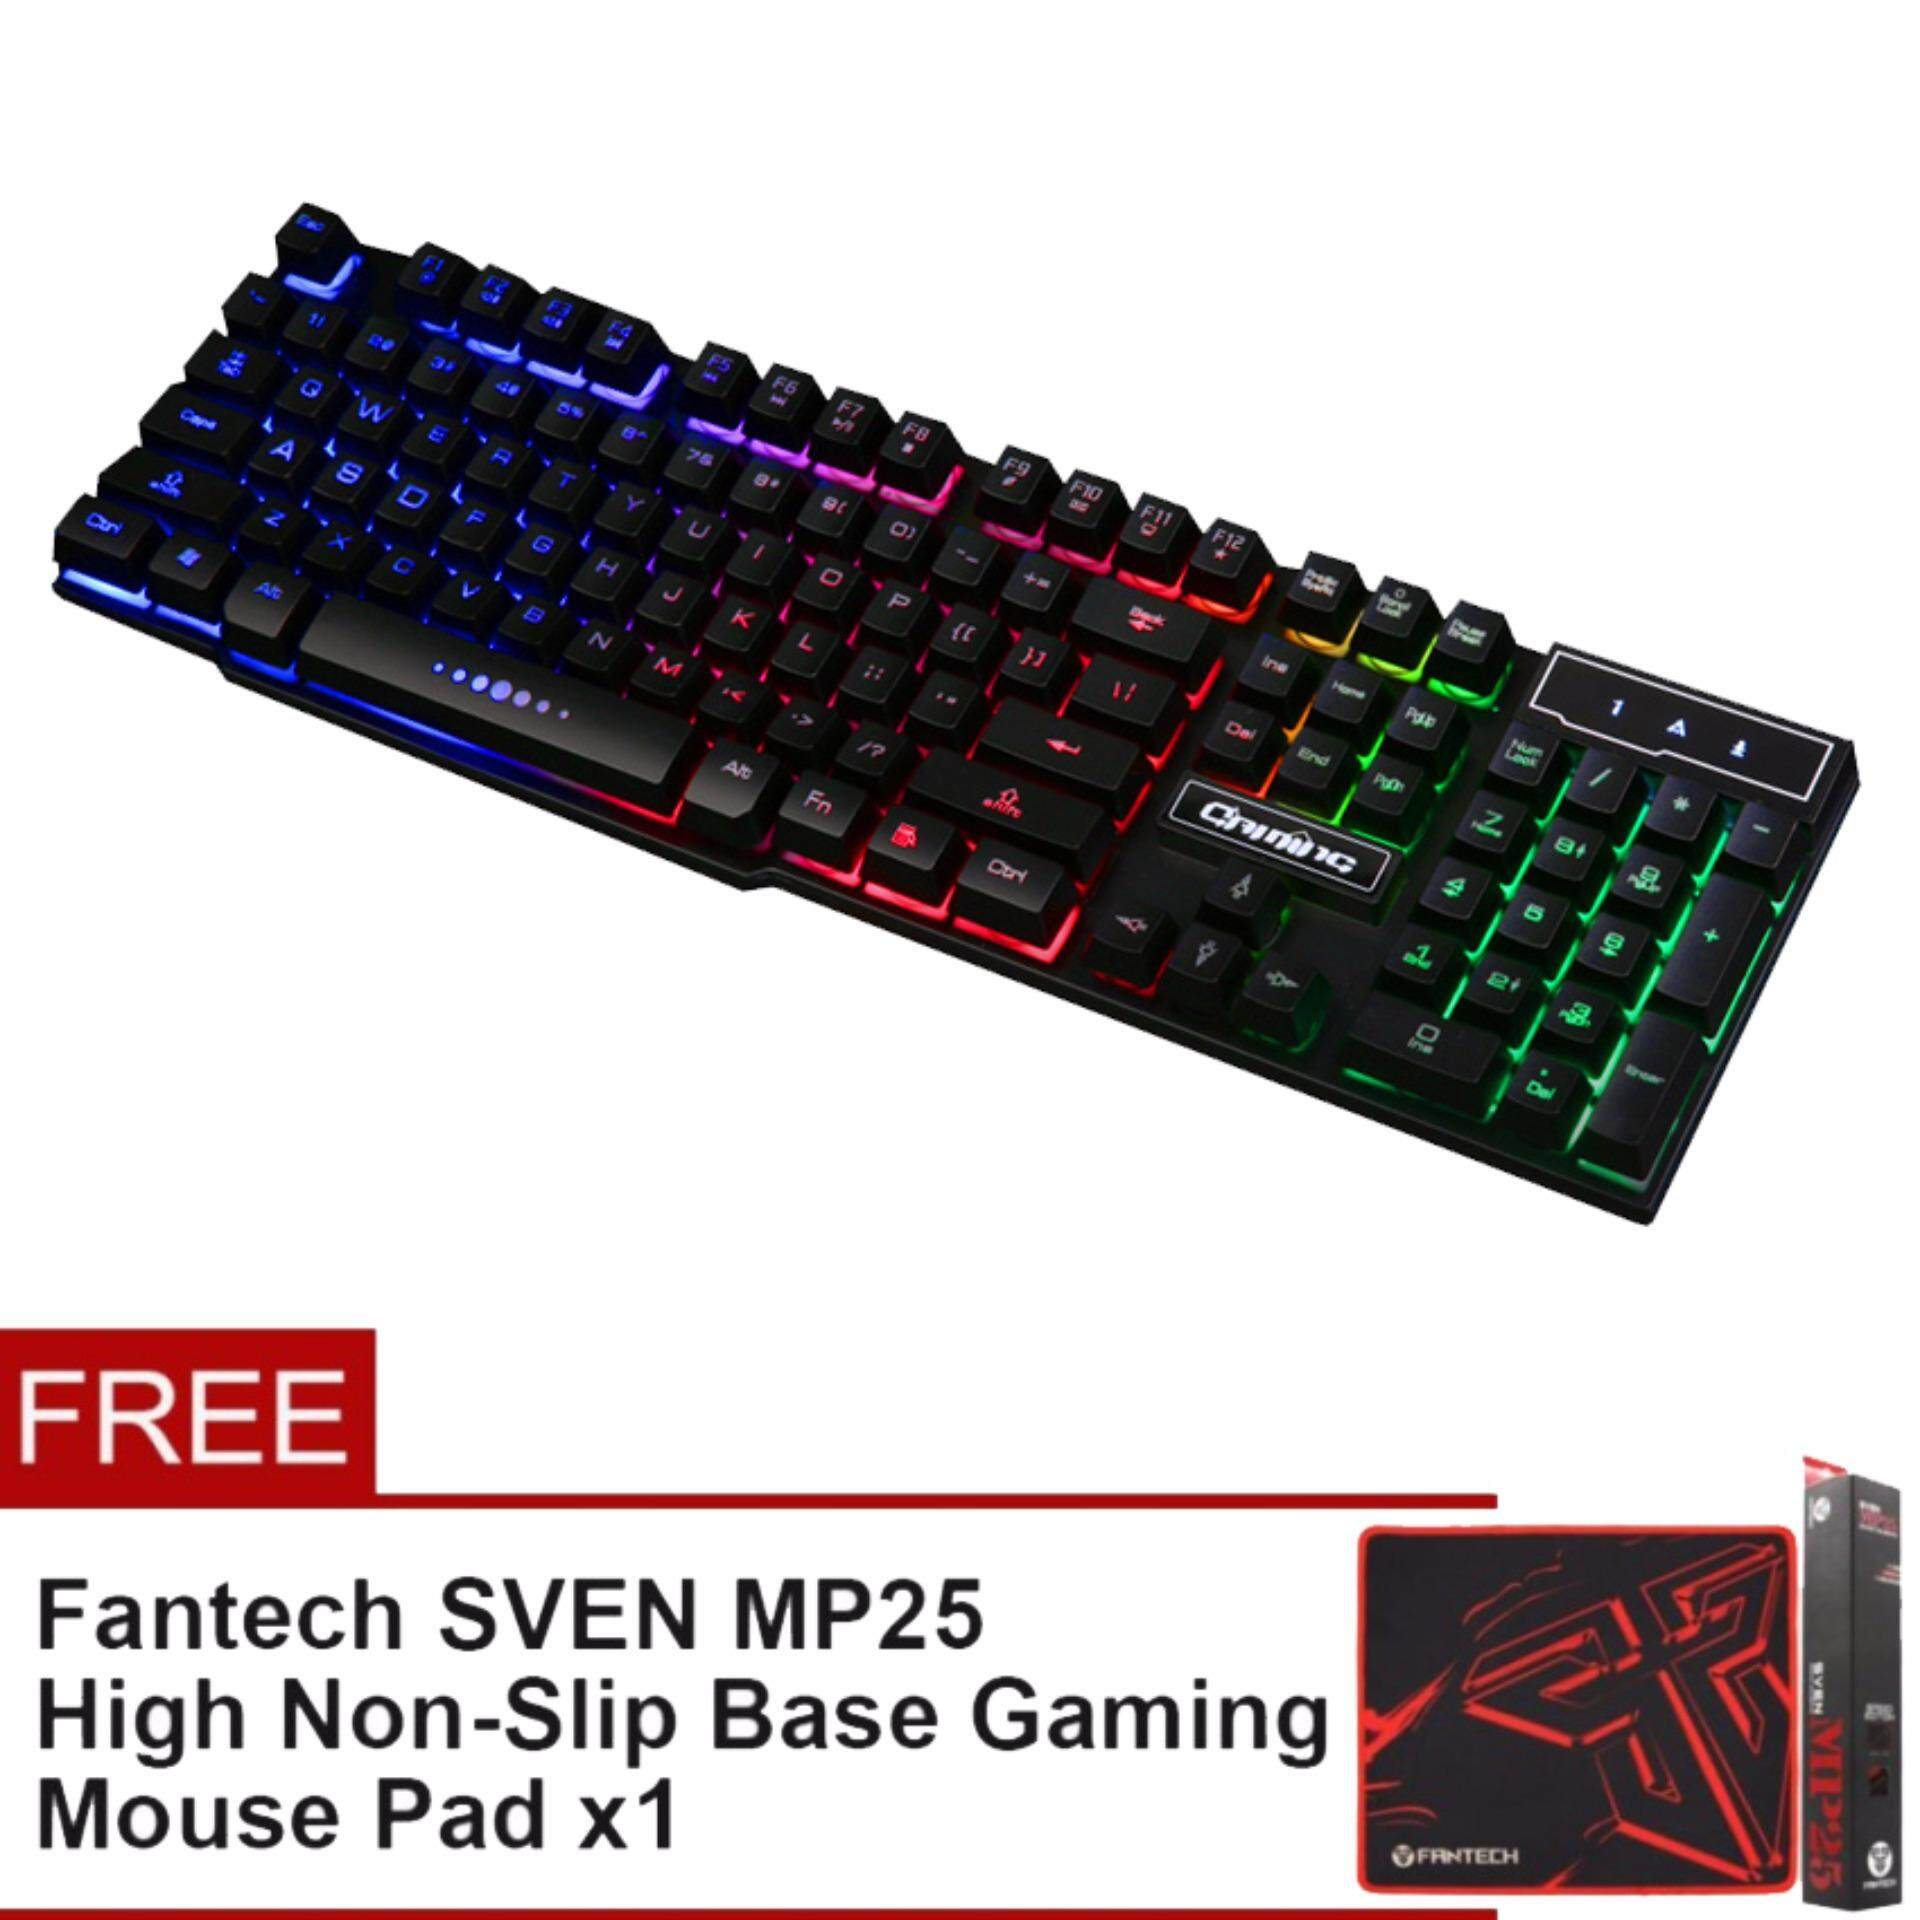 RUYINIAO [SP28] V8 USB Gaming Keyboard Rainbow Backlight For PC/Laptop Malaysia